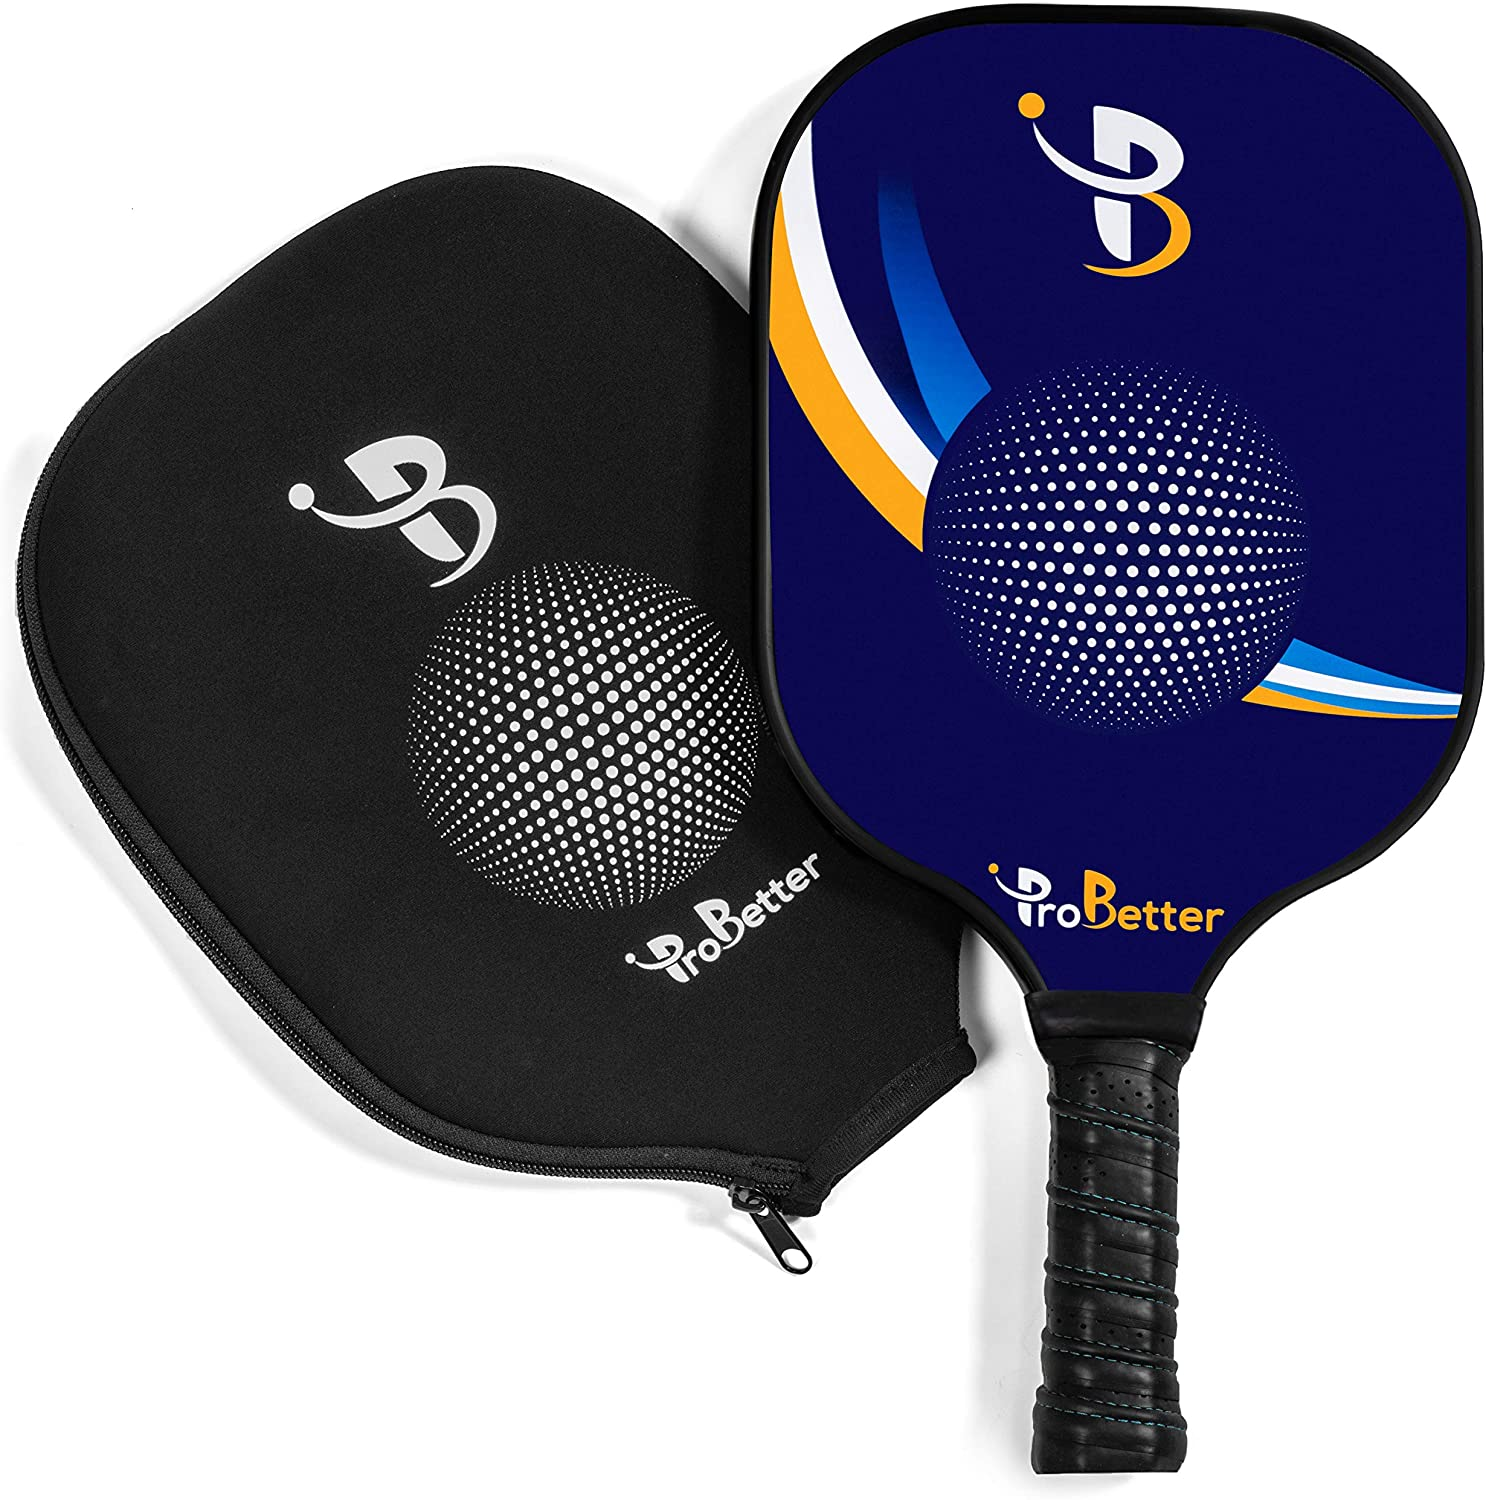 ProBetter Pickleball Paddle - USAPA Approved - Graphite Face Honeycomb Core - Edge Guard - Pickleball Racket Cover - Premium Cushion Grip Provides ...